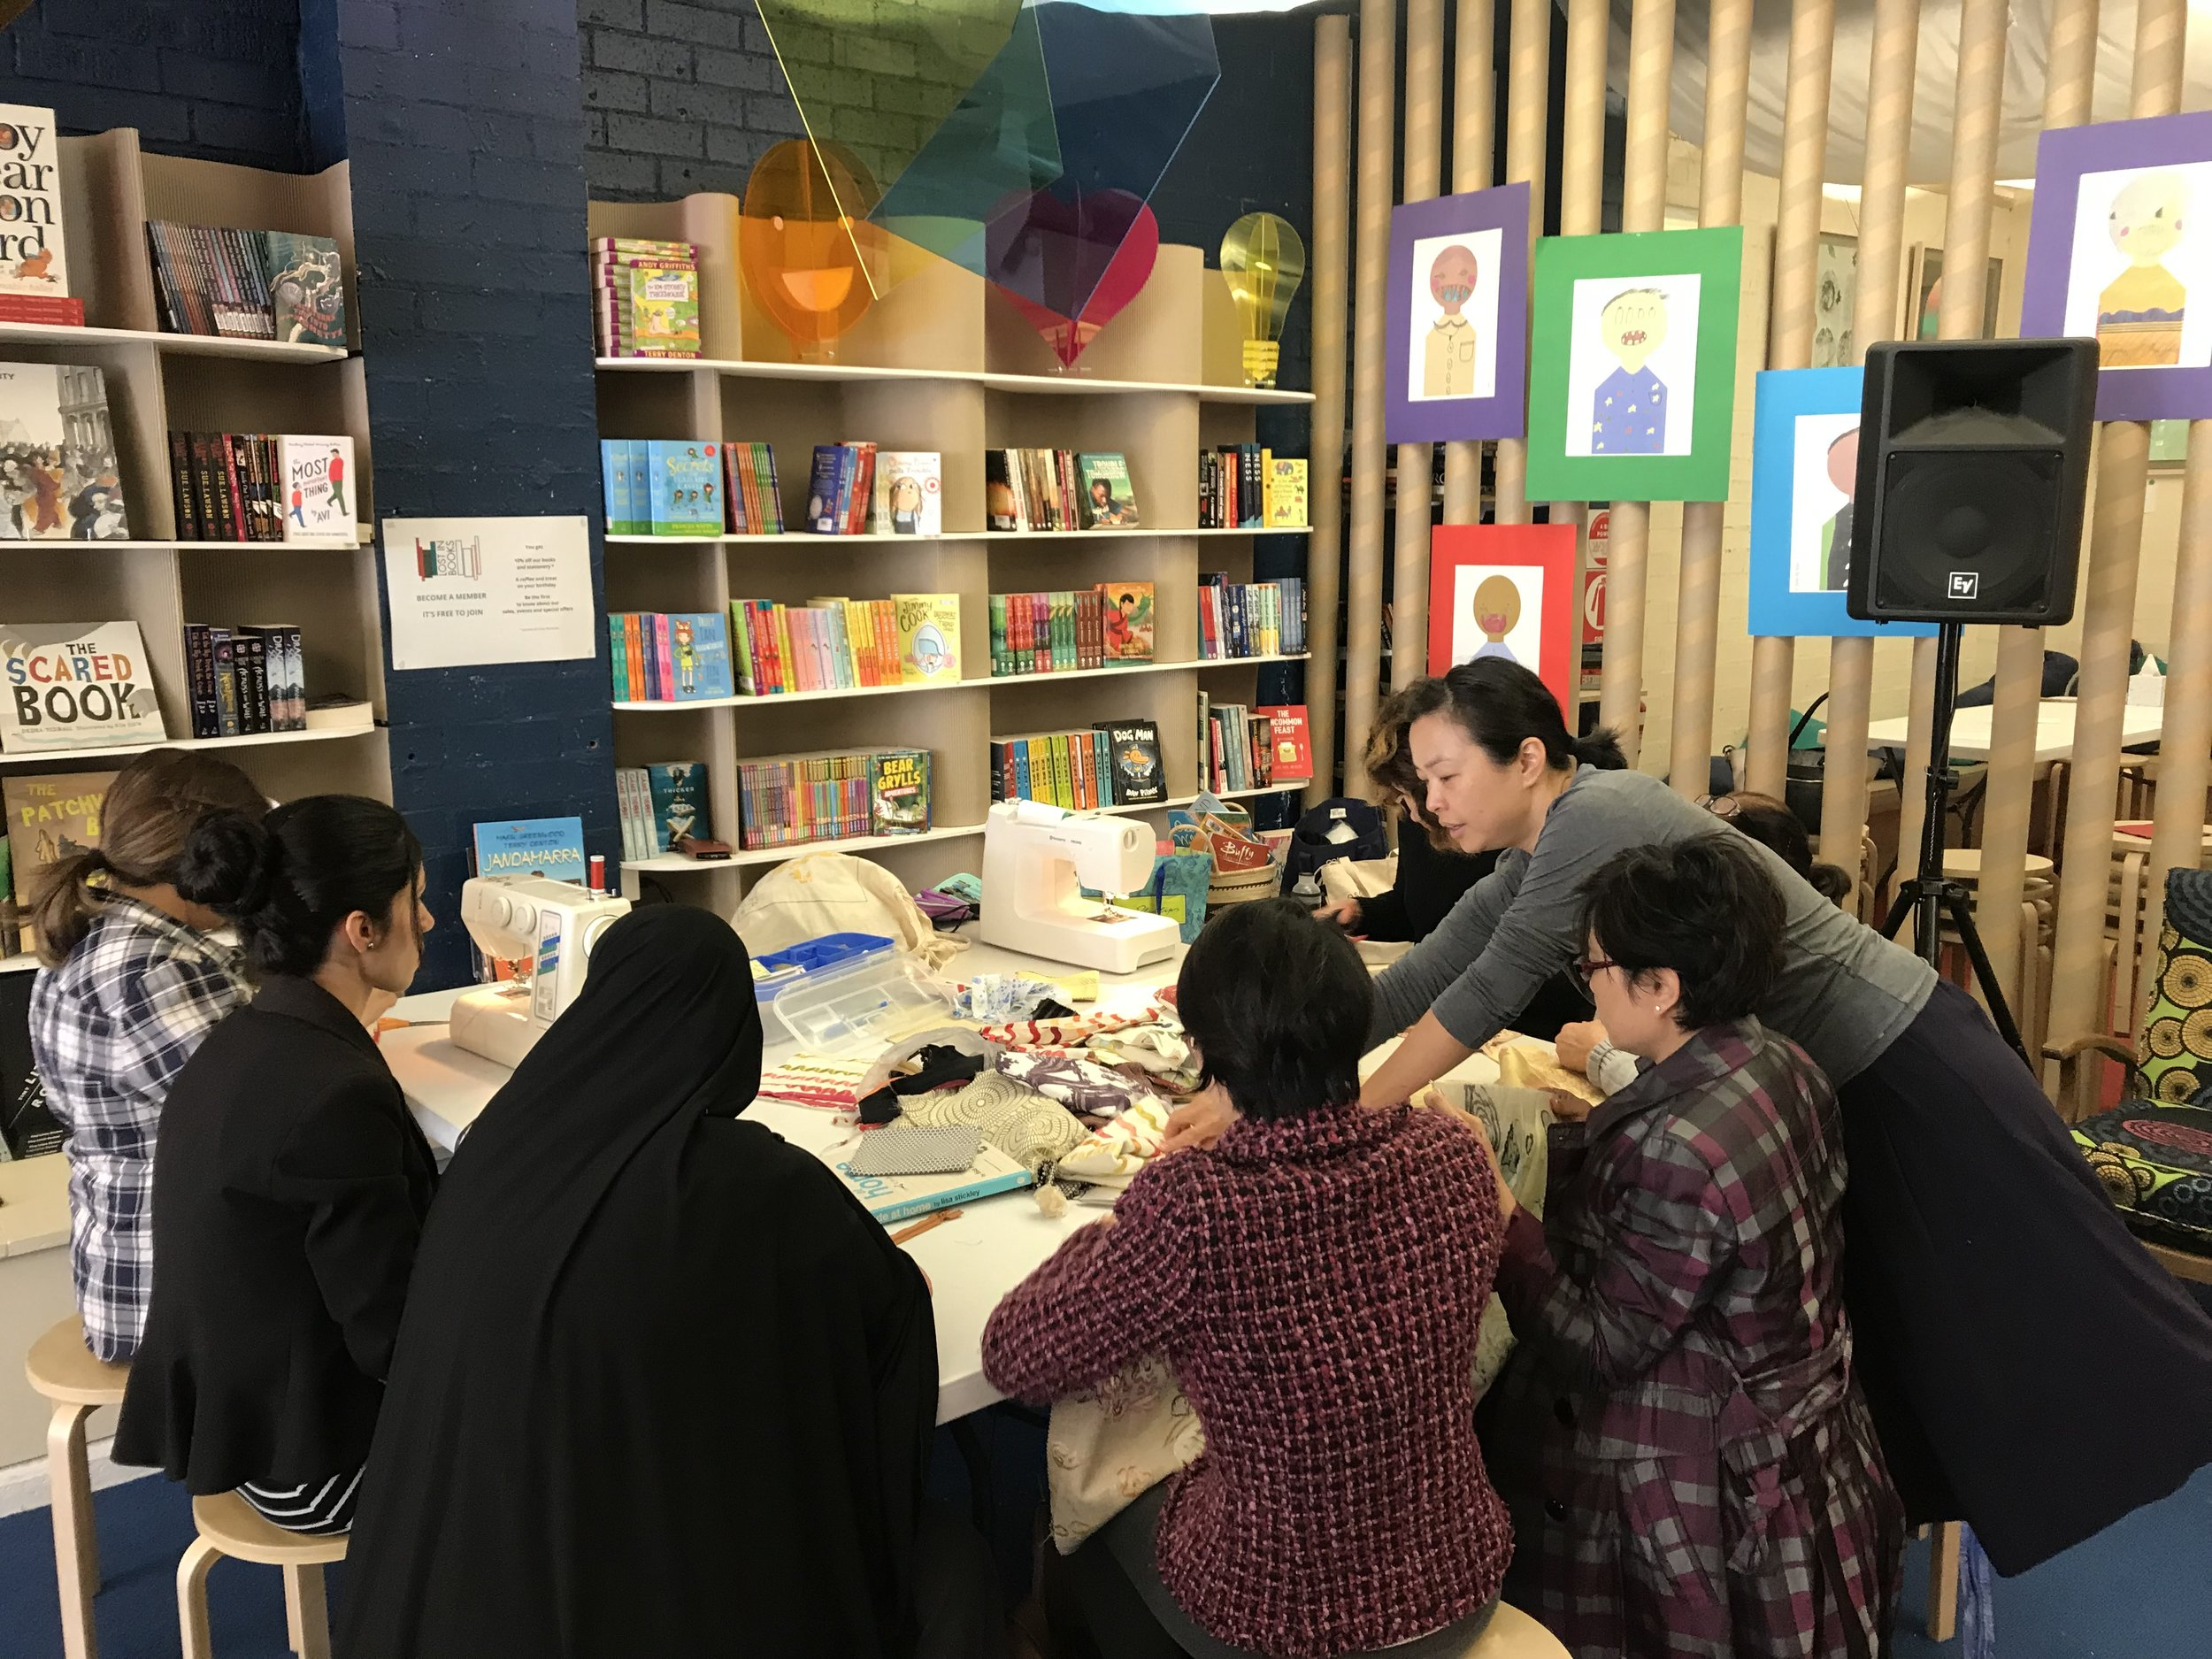 Nga Le (standing) facilitating the weekly textiles group at Lost In Books